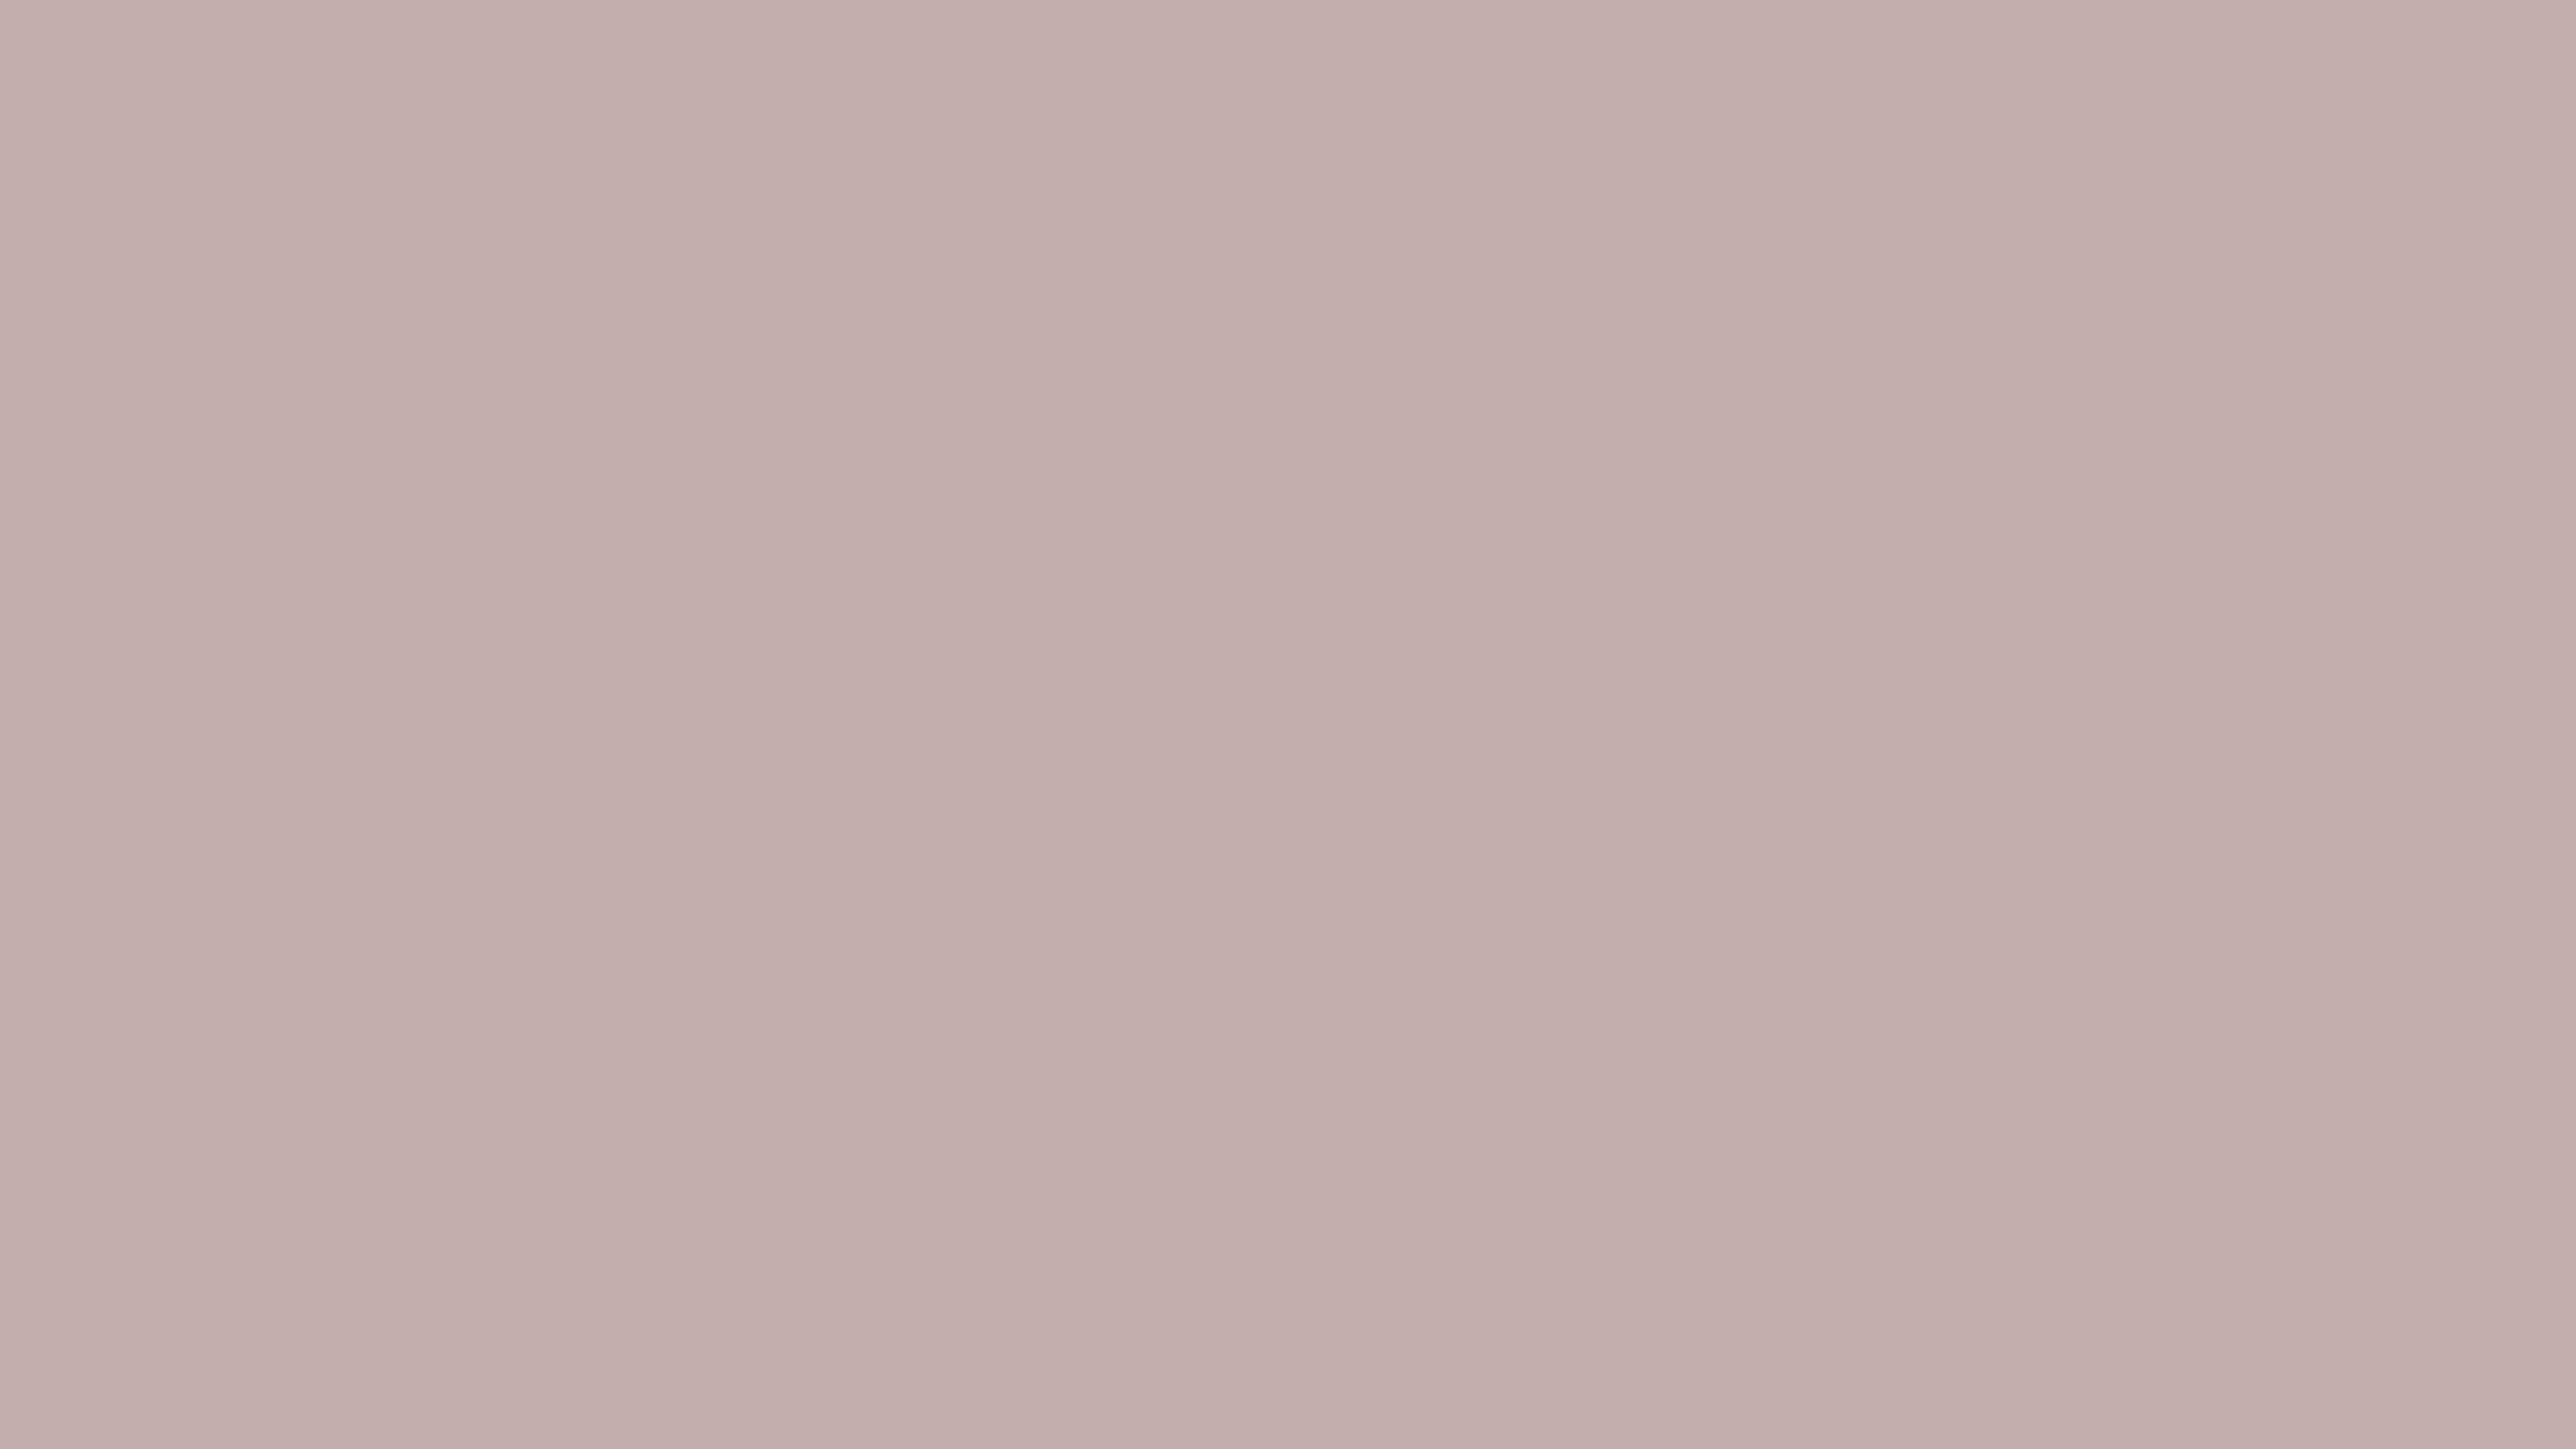 4096x2304 Silver Pink Solid Color Background